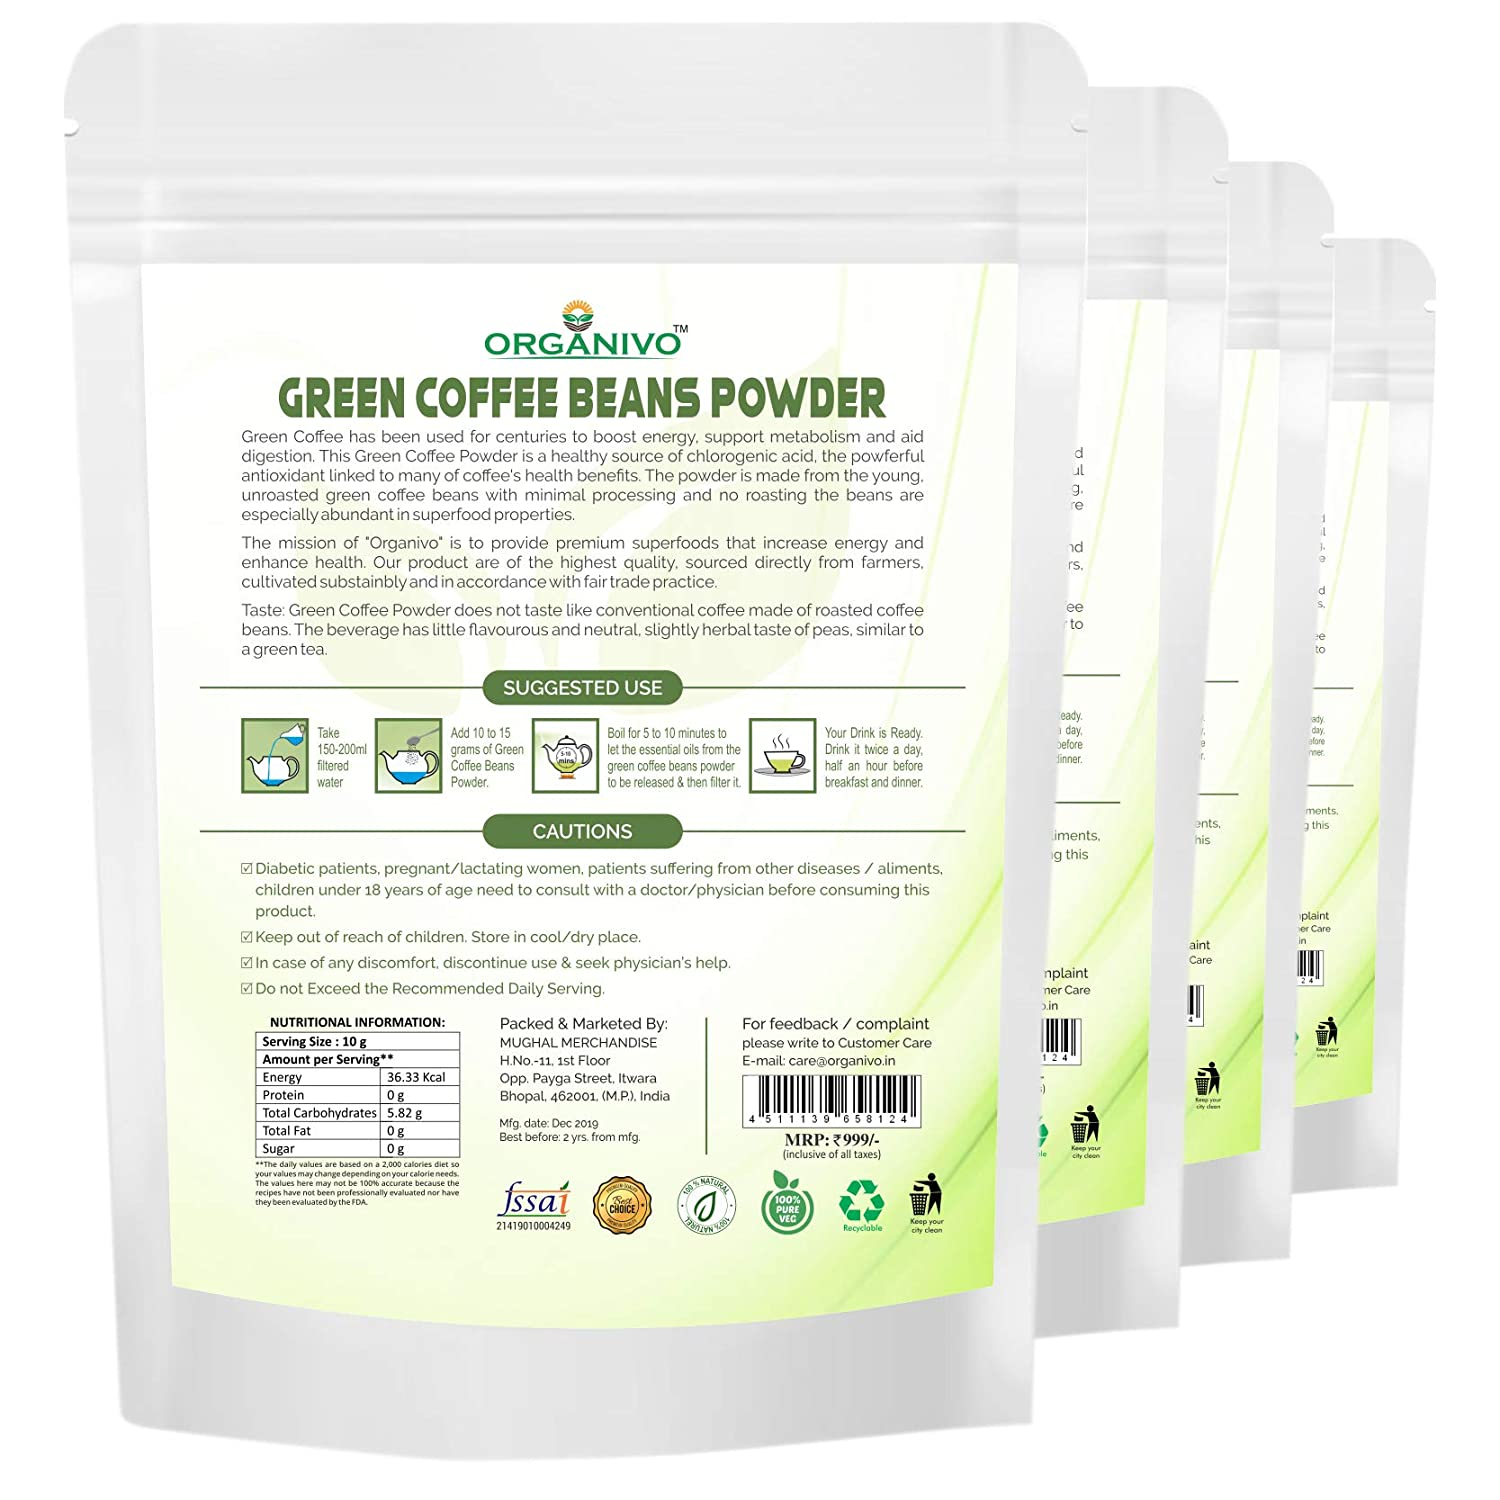 Organivo Pure Natural Arabica Green Coffee Beans Powder For